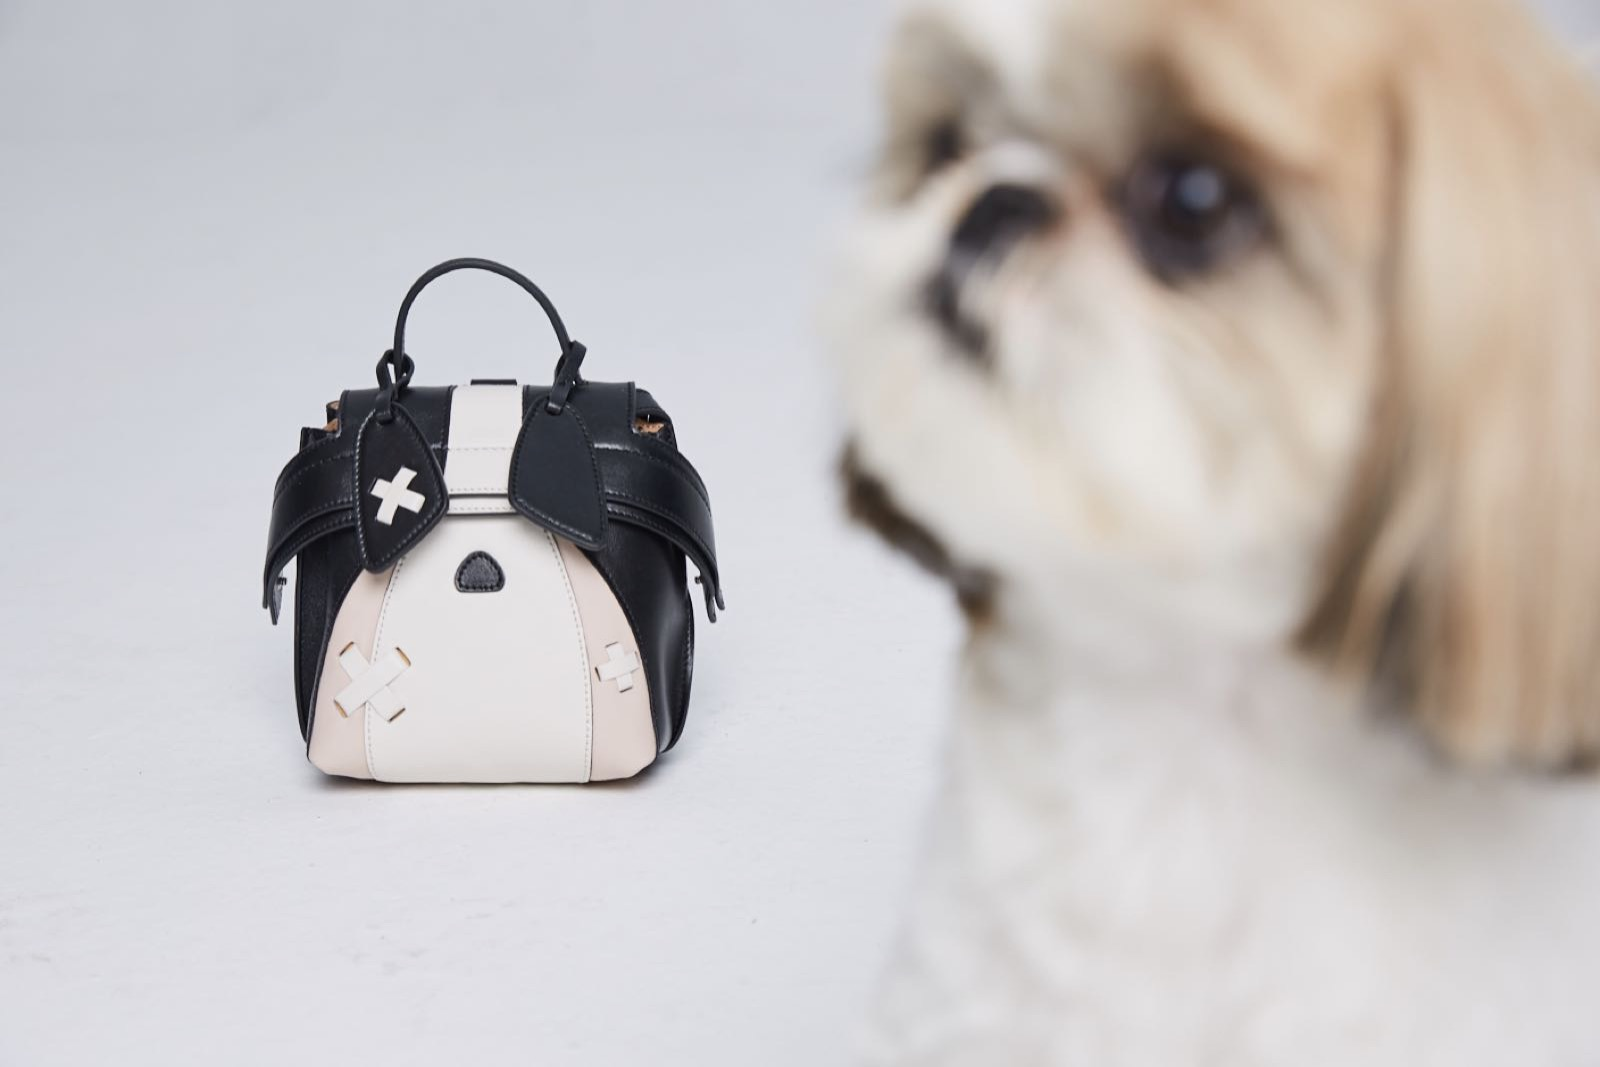 The purse riffs on the theme of the dog which is a celebrated zodiac animal this year in China.